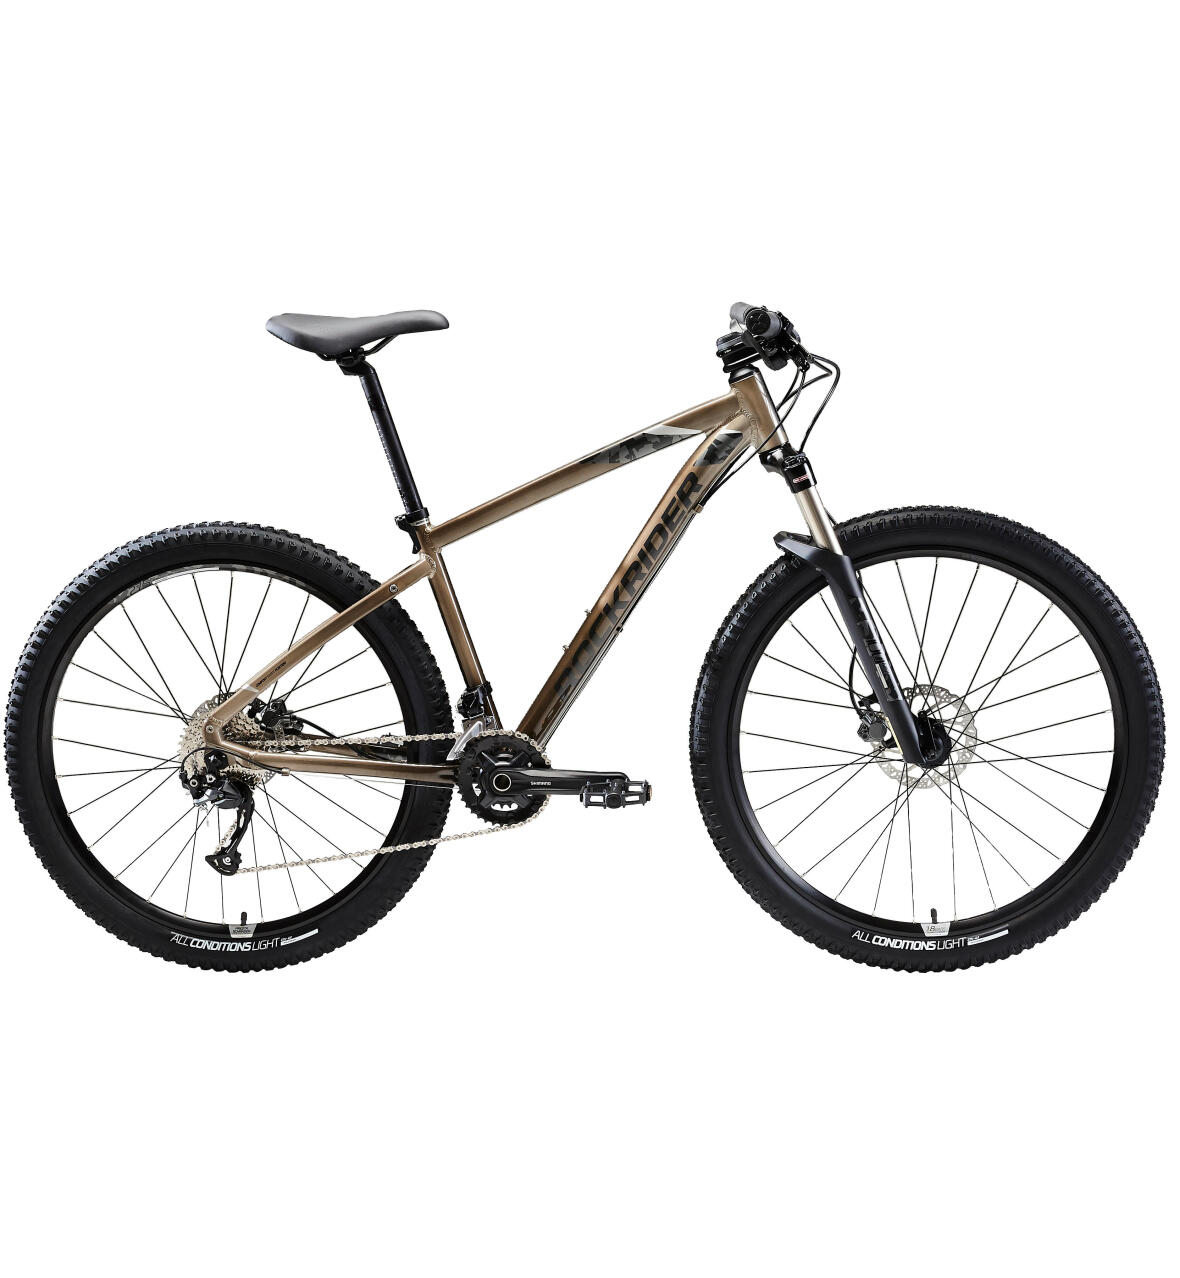 VTT ROCKRIDER ST 540 SABLE